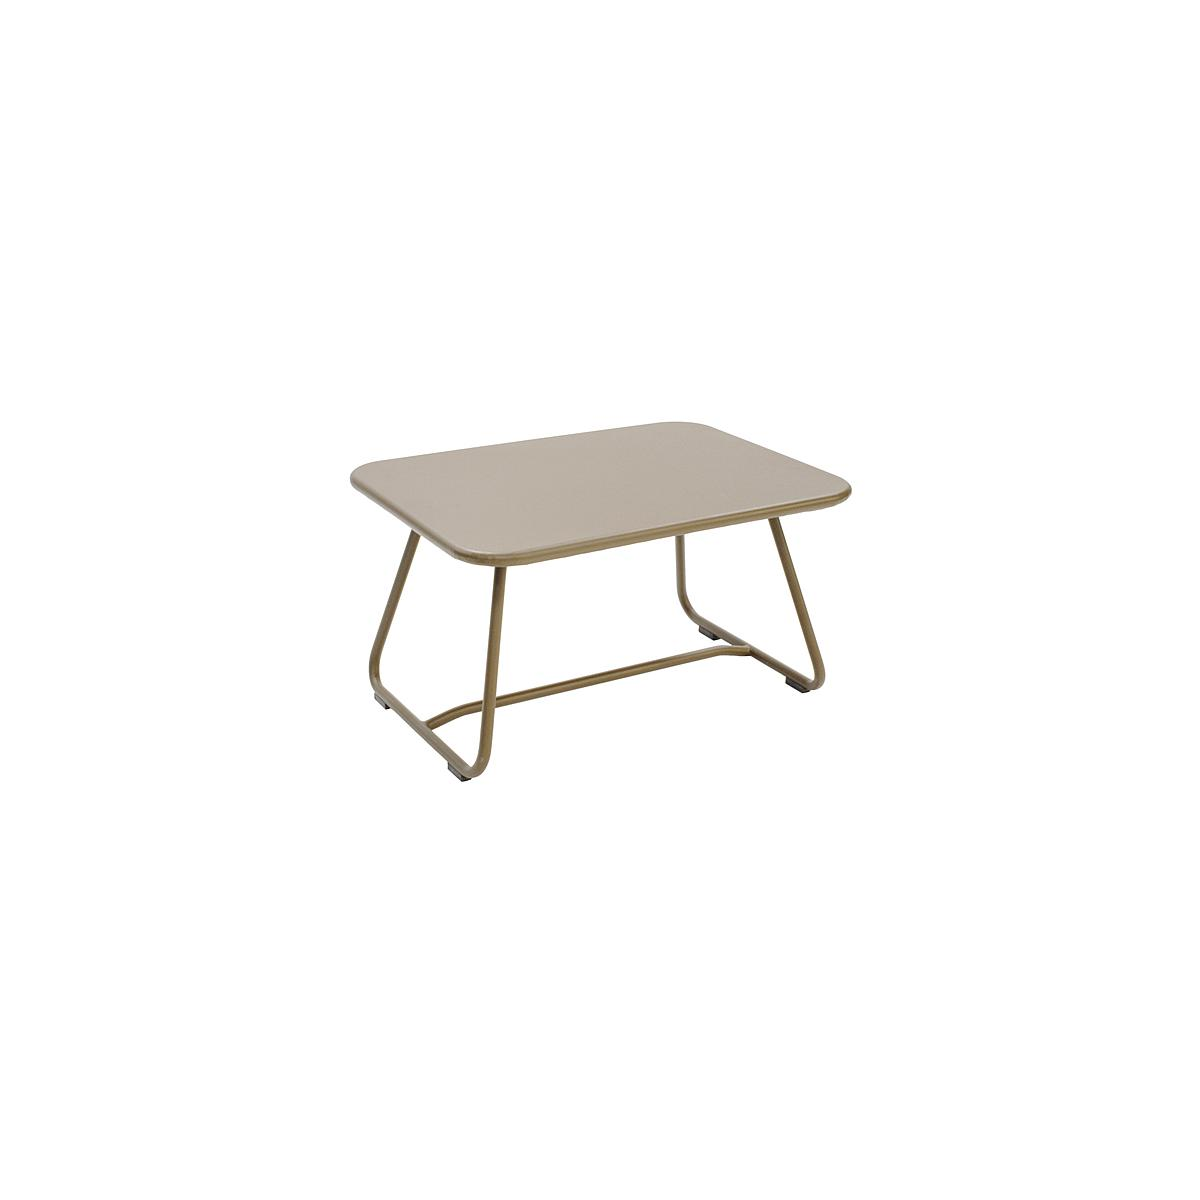 SIXTIES by Fermob Table basse Brun muscade